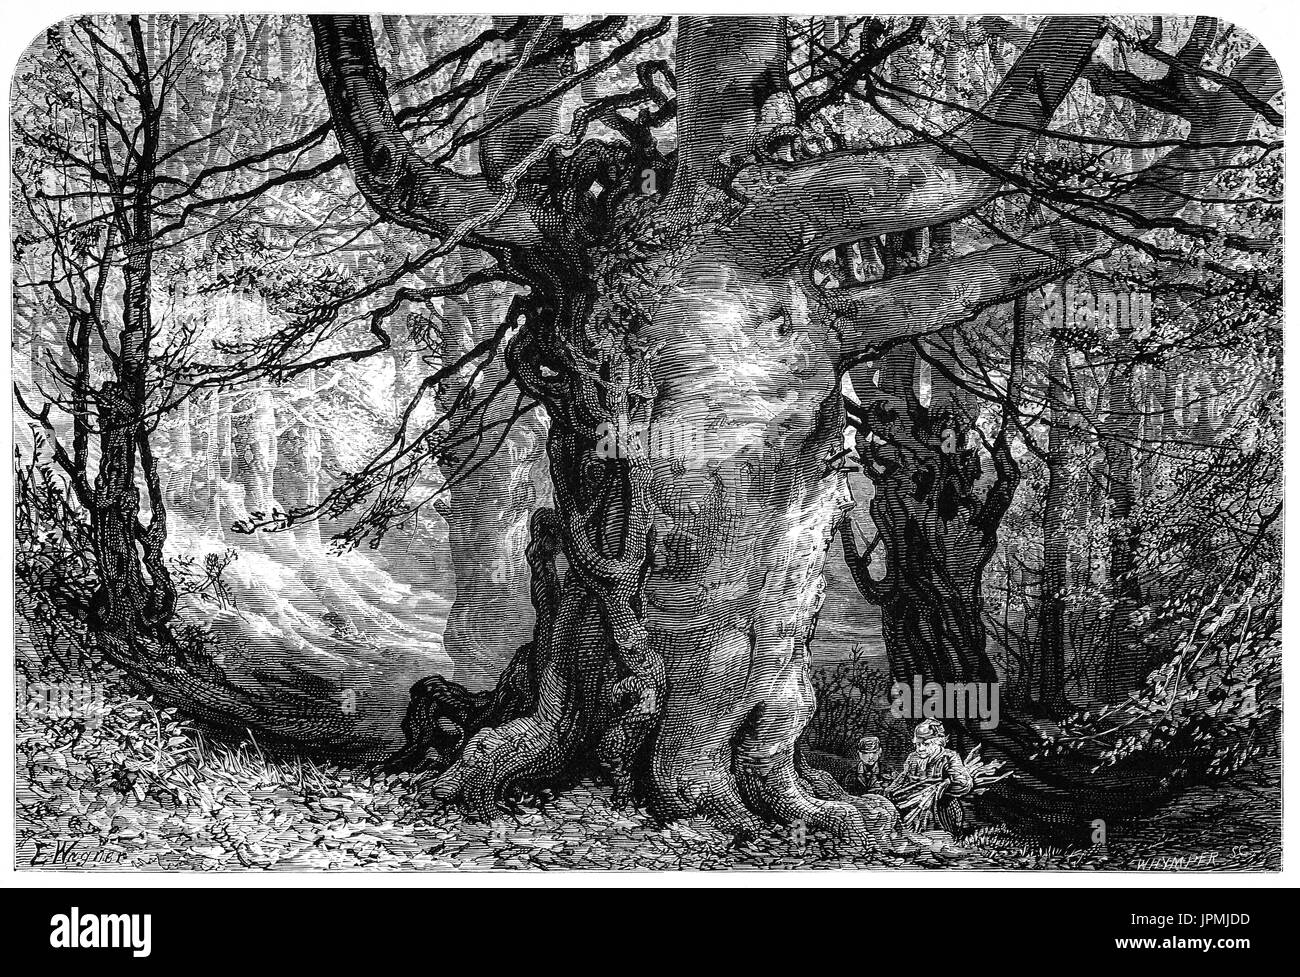 1870: People collecting wood below ancient beech trees in Burnham Beeches, to the west of Farnham Common in Burnham, Buckinghamshire, England. Open to the public it is now  a Site of Special Scientific Interest, a National Nature Reserve and a Special Area of Conservation. - Stock Image